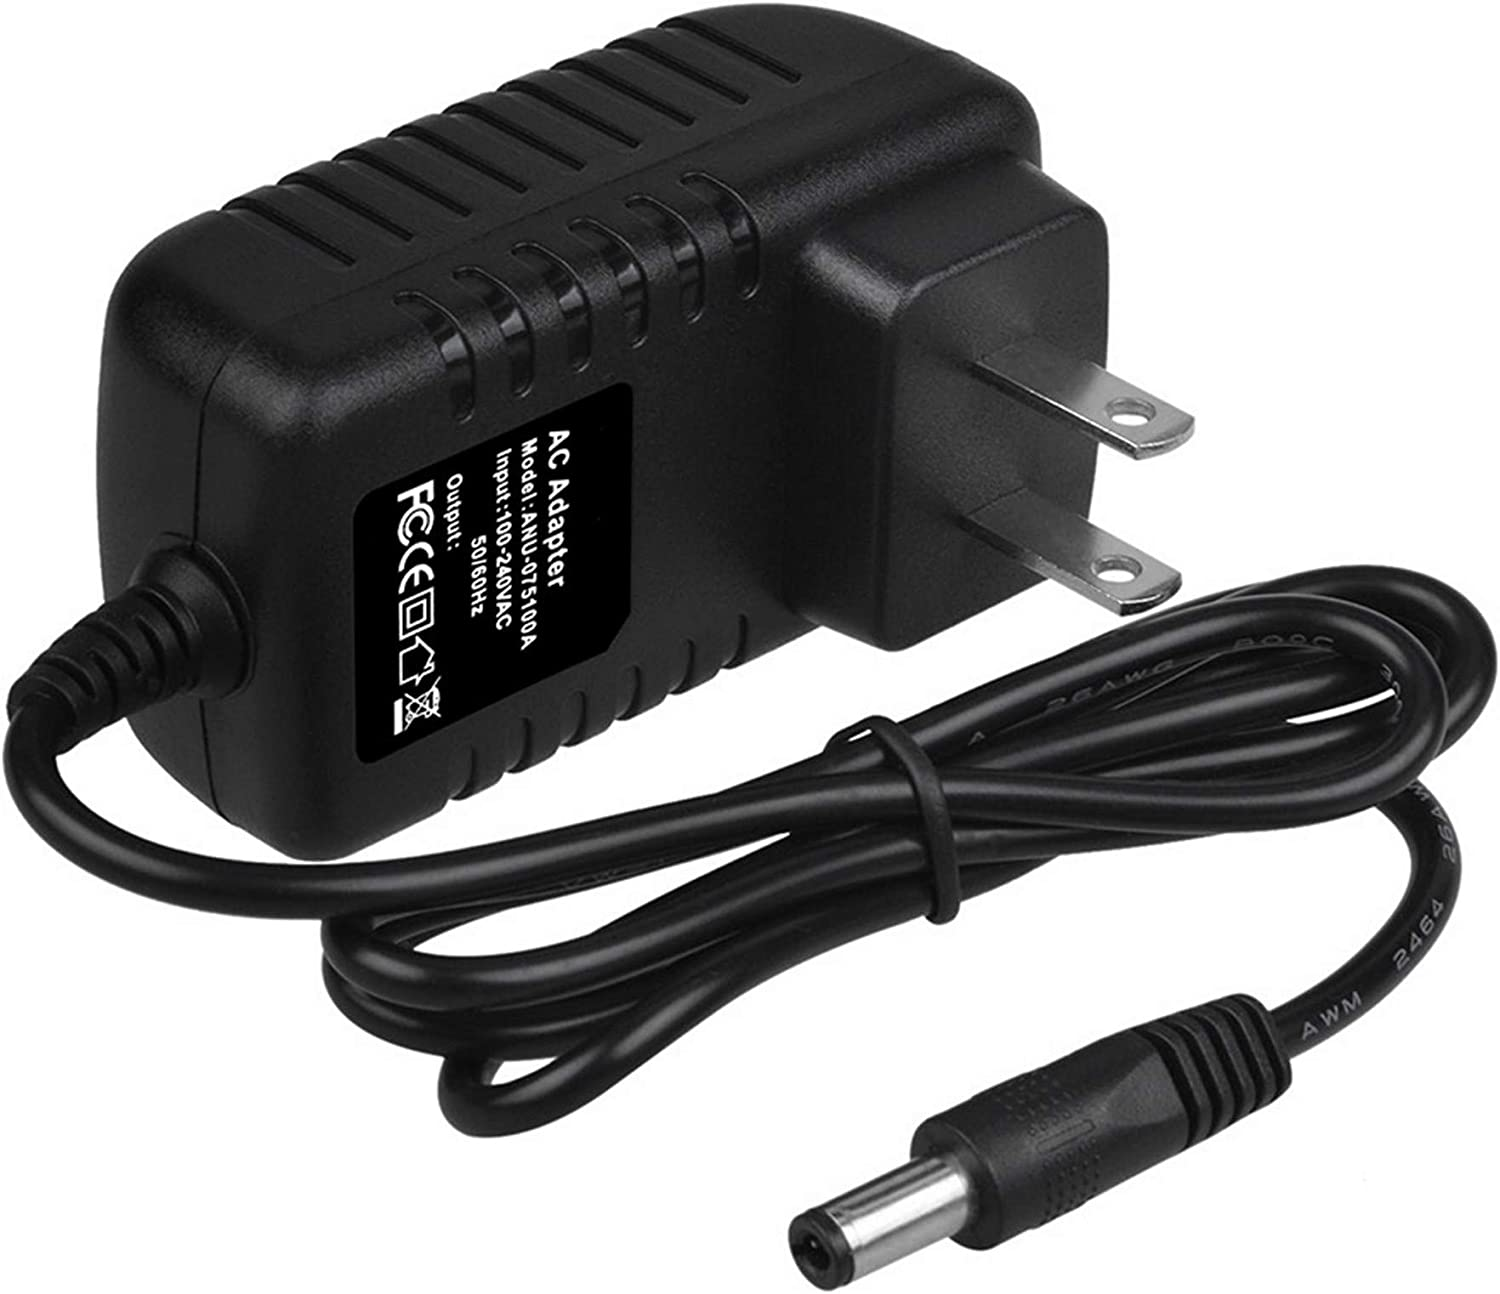 Max 52% OFF HISPD Seasonal Wrap Introduction AC Adapter for KORG Keyboard Switching Supply SP100 Power